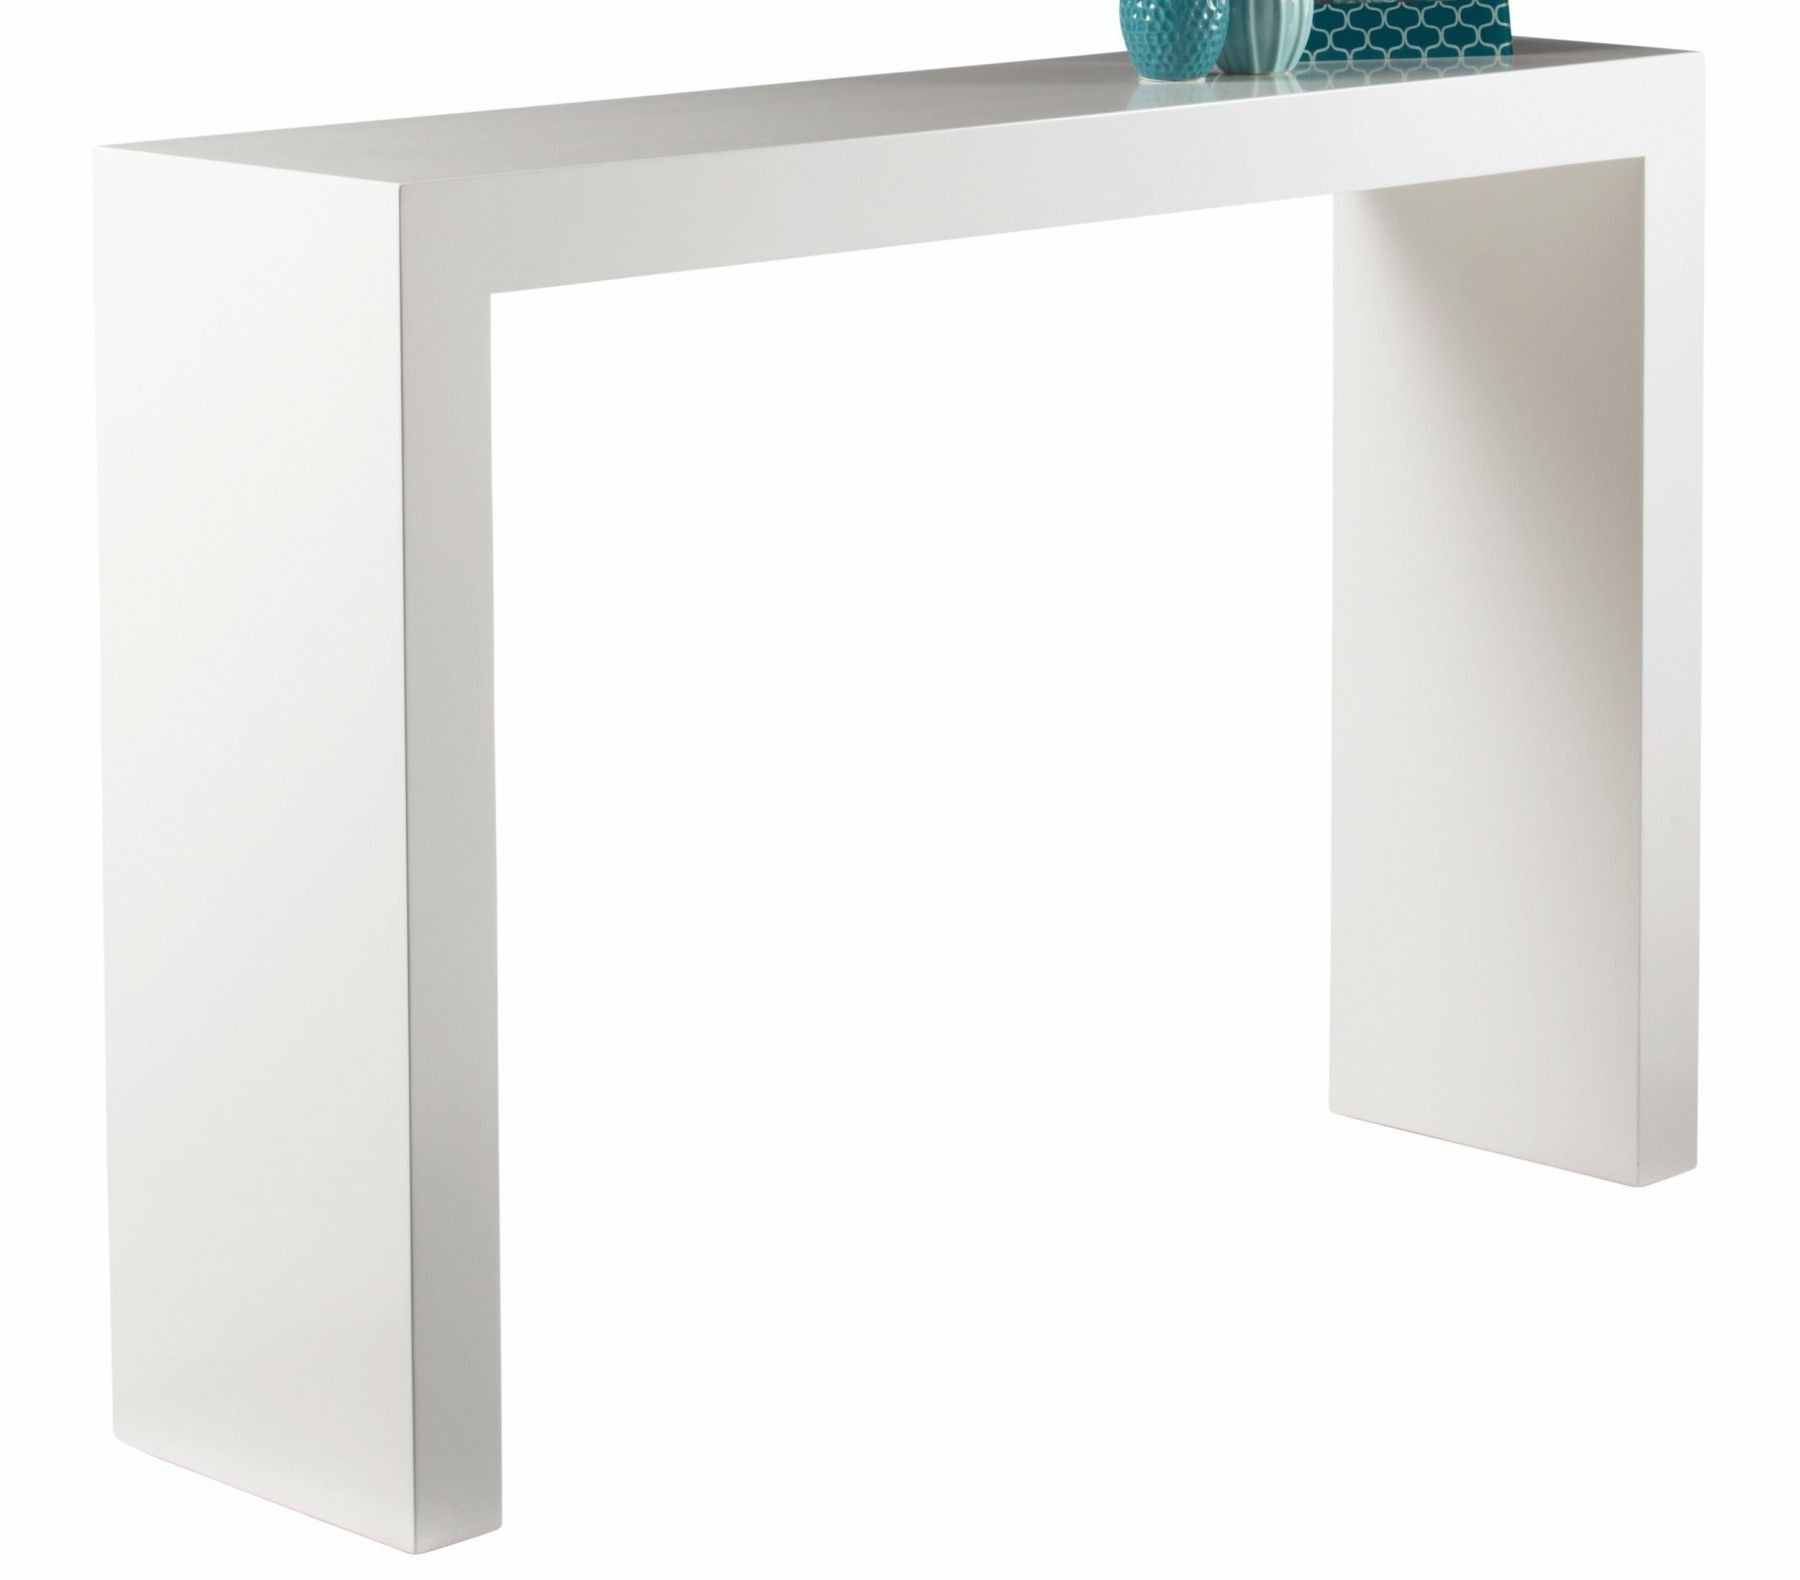 Arch white high gloss console table 89586 sunpan decker arch white high gloss console table 89586 sunpan geotapseo Gallery